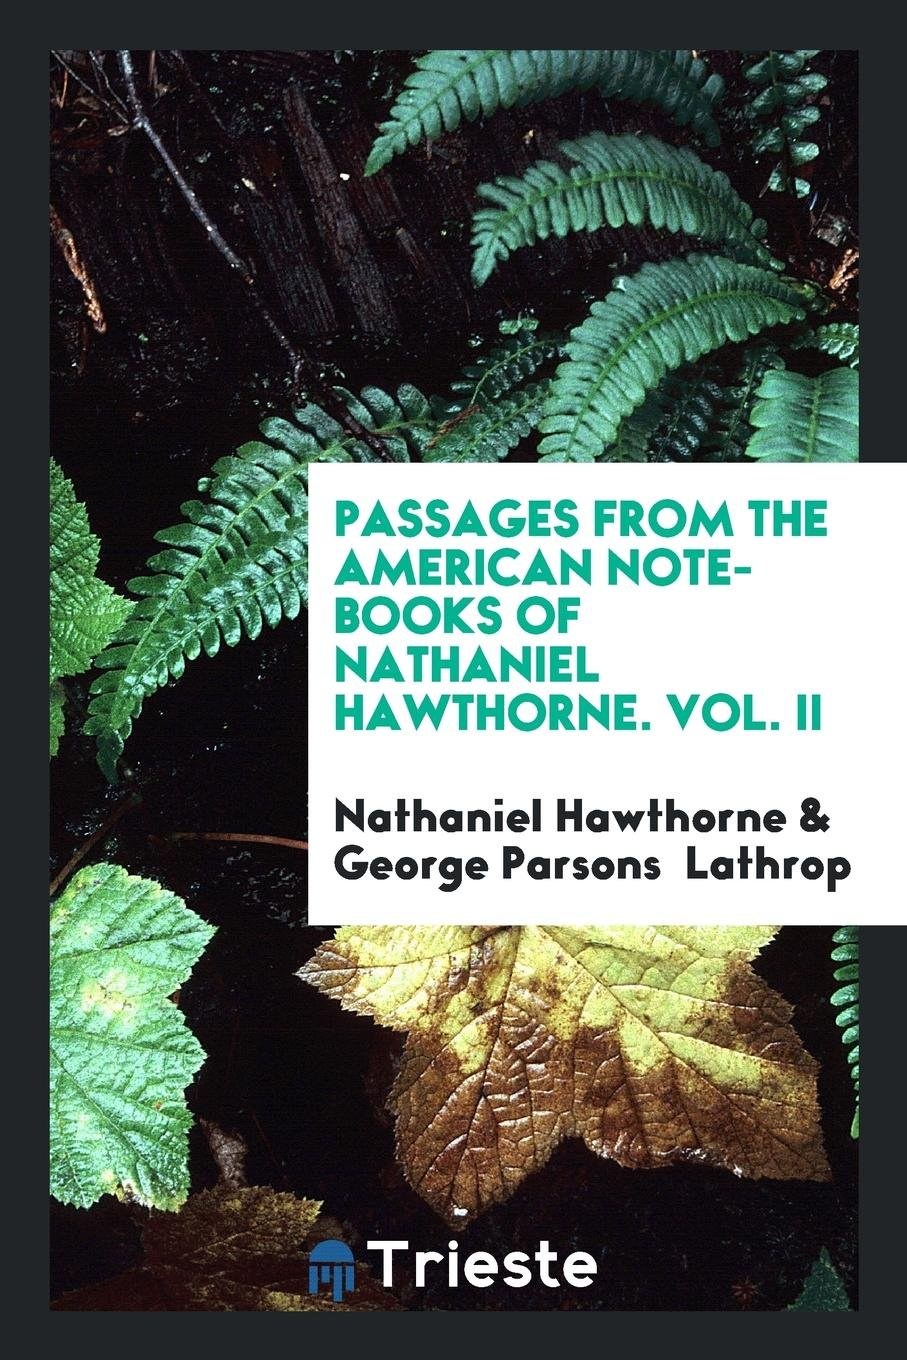 Passages from the American Note-Books of Nathaniel Hawthorne Paperback –  Import, 17 May 2018